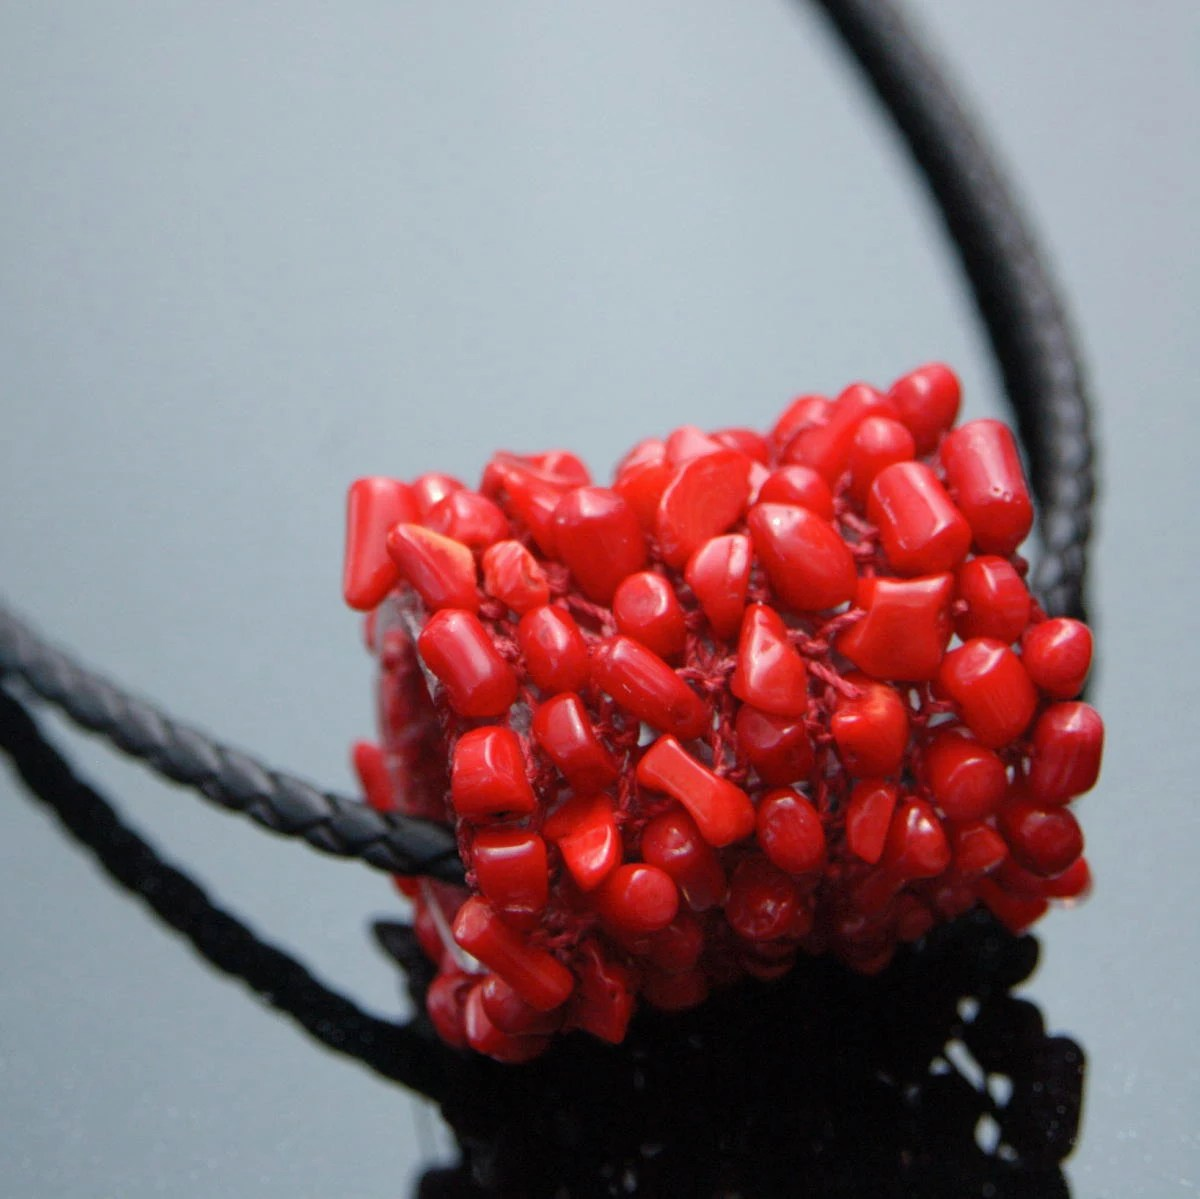 Red Coral Pendant - Cylinder Shaped Pendant Hand-knitted from Red Nylon Yarn with Natural Red Coral Chips